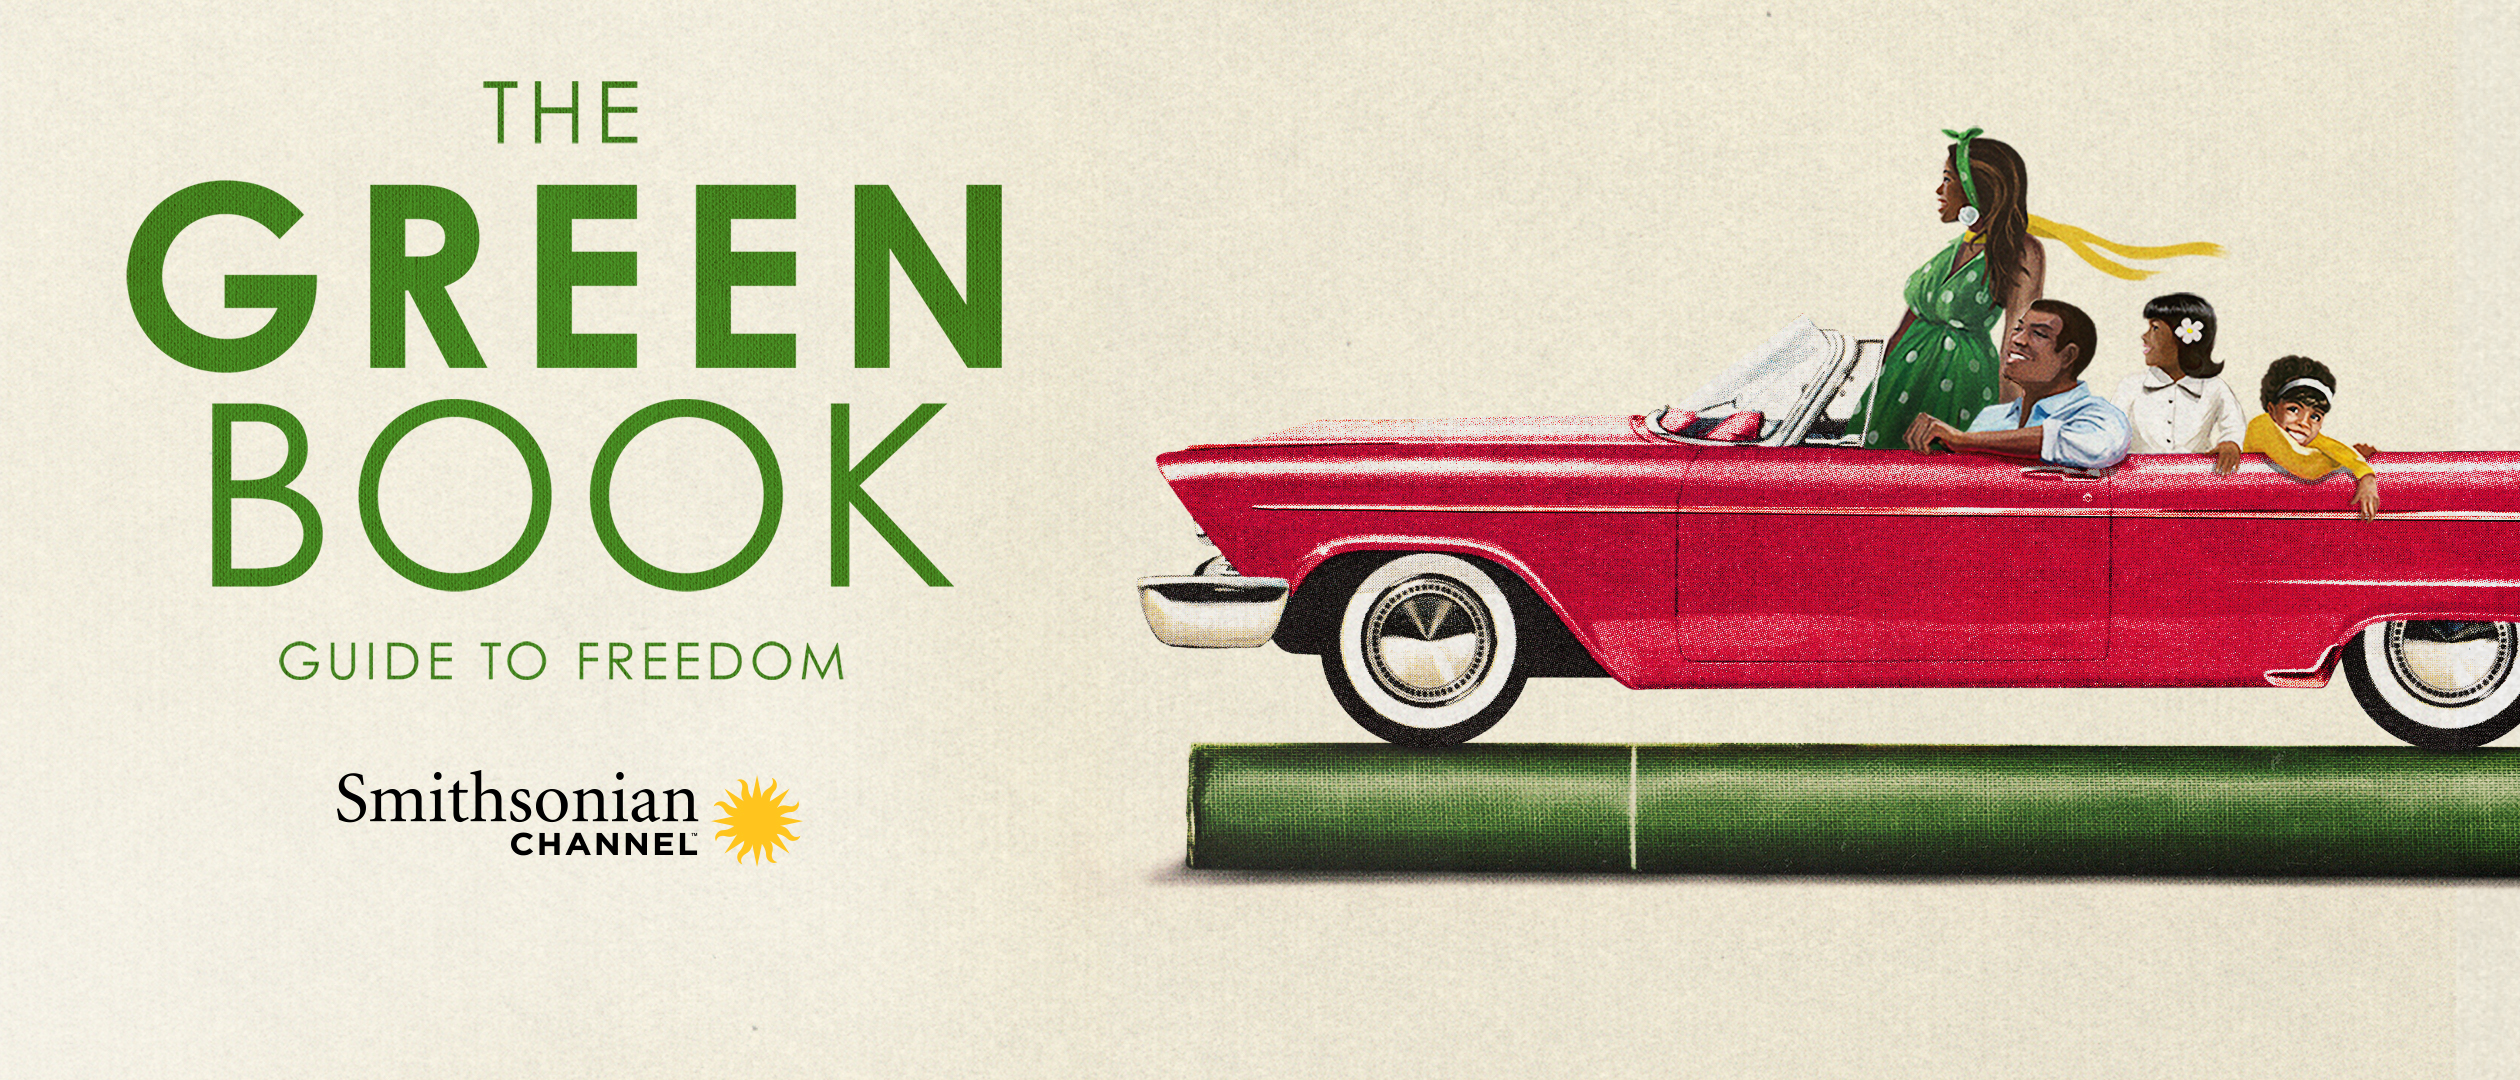 The Green Book: Guide to Freedom exhibition image